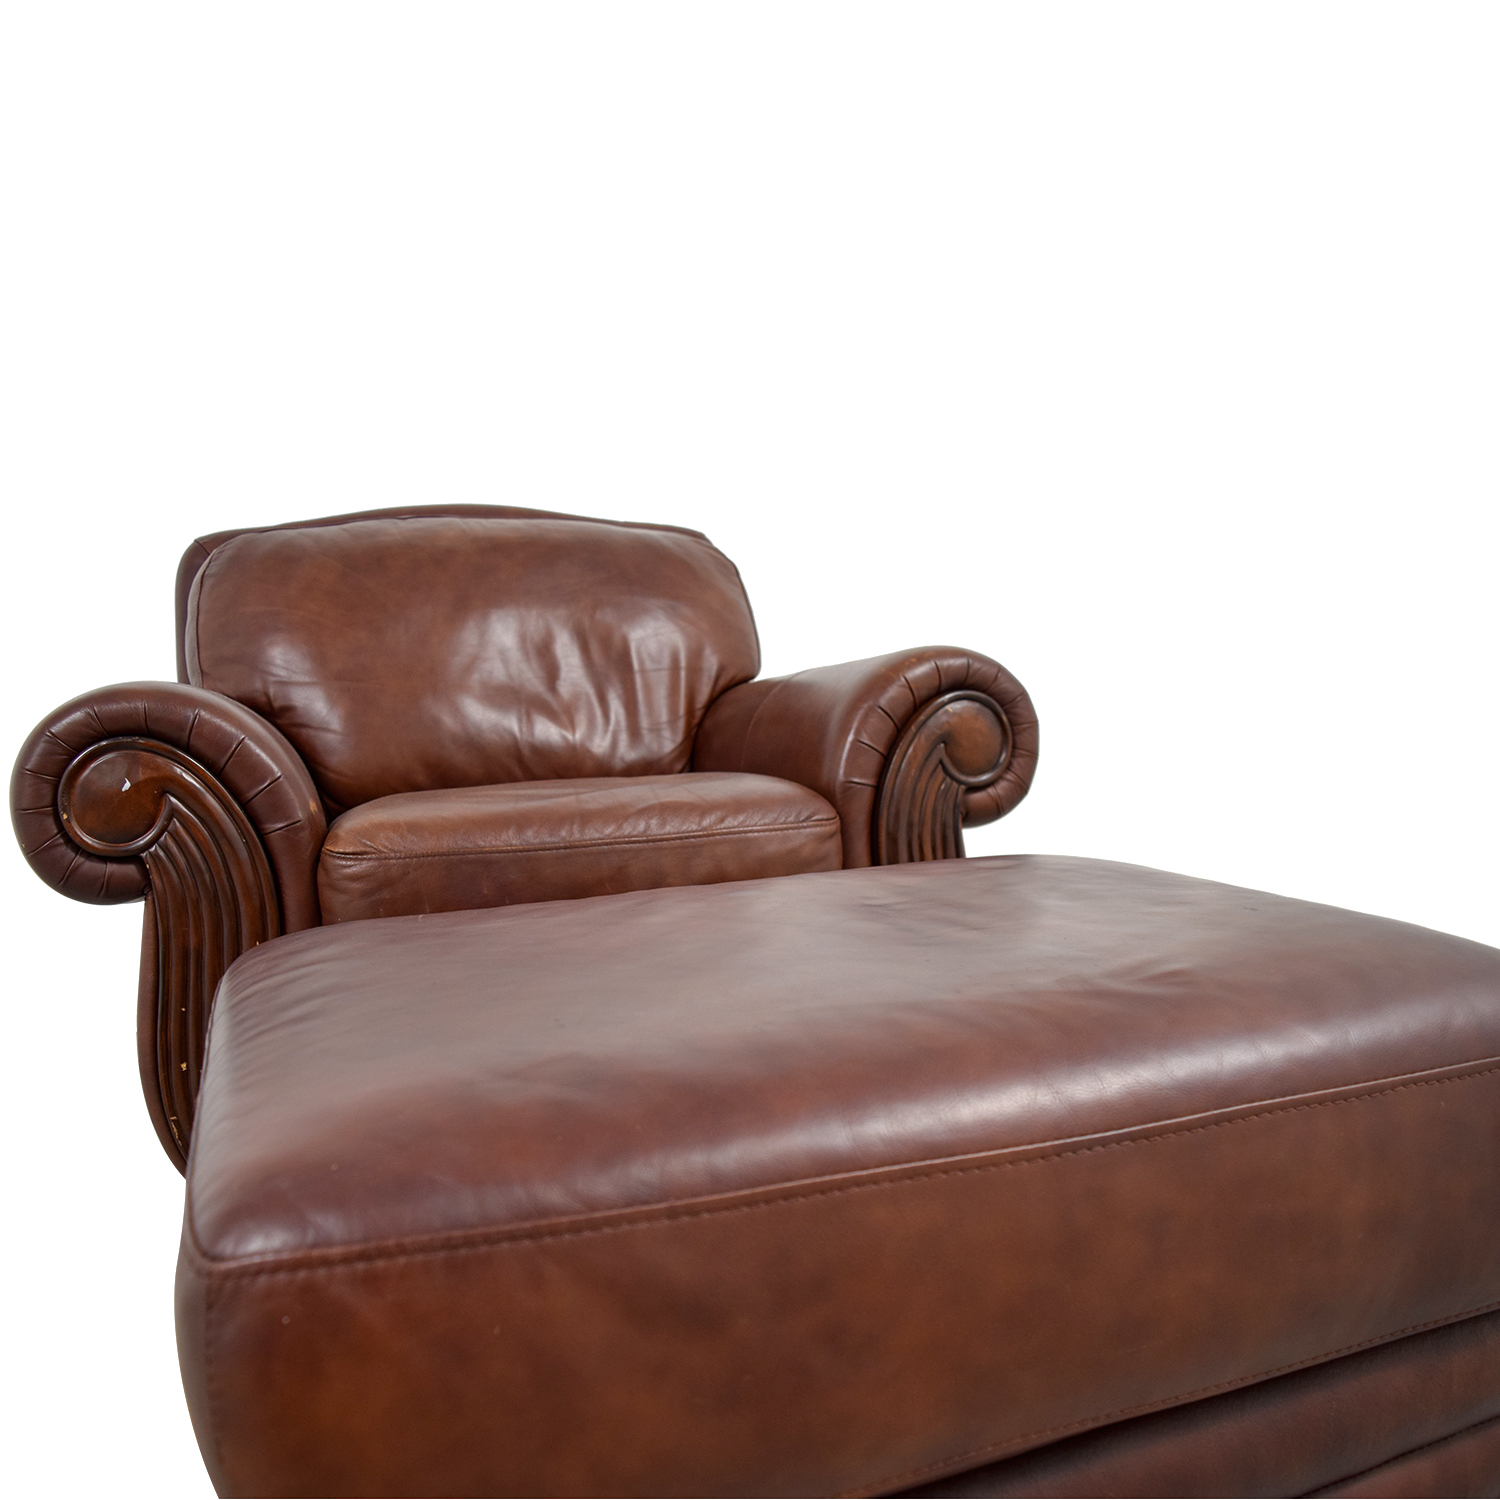 Rooms To Go Rooms To Go Brown Leather Chair And